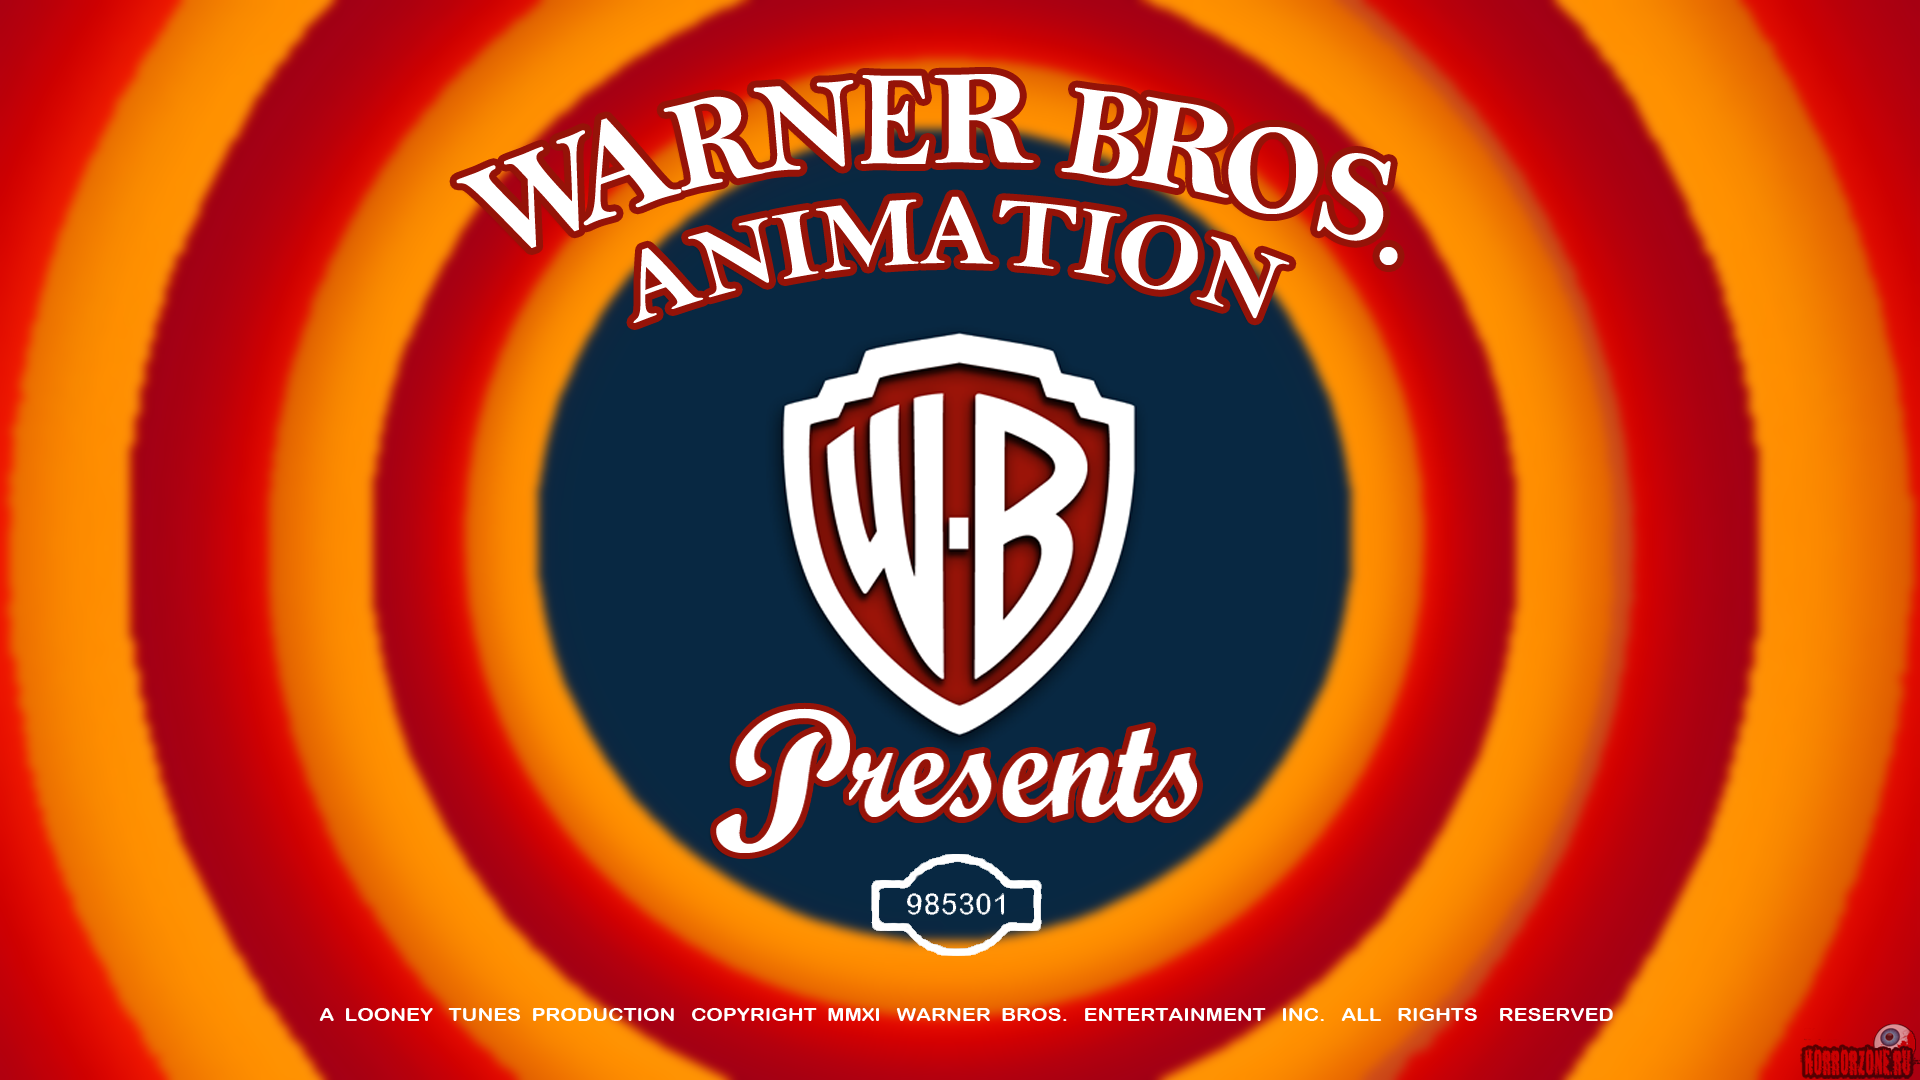 Pin warner bros pictures on pinterest